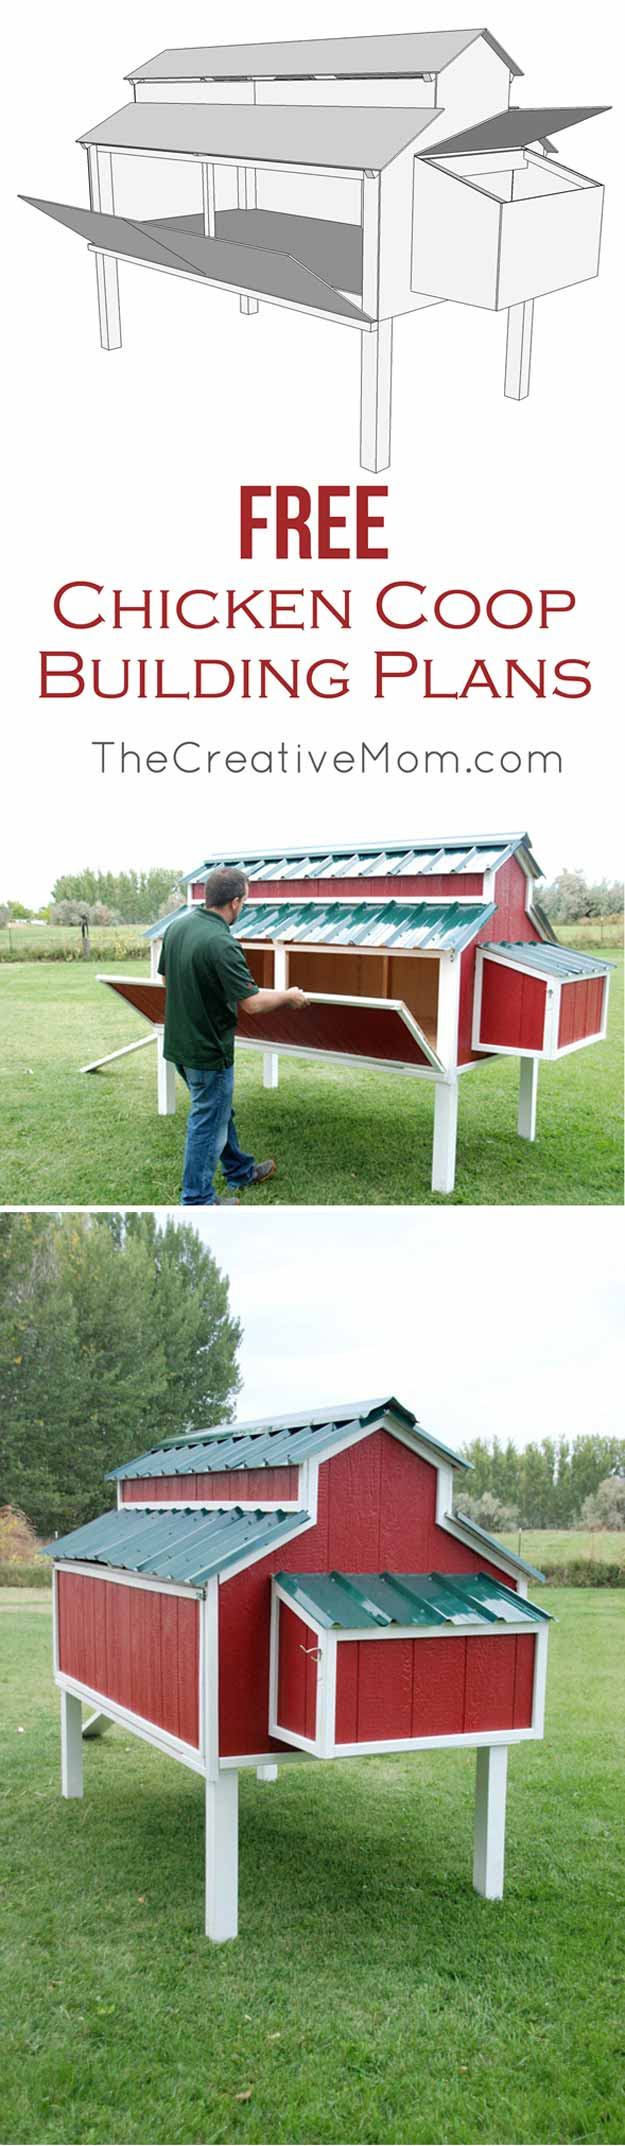 15-more-awesome-chicken-coop-ideas-and-designs-red-chicken-coop